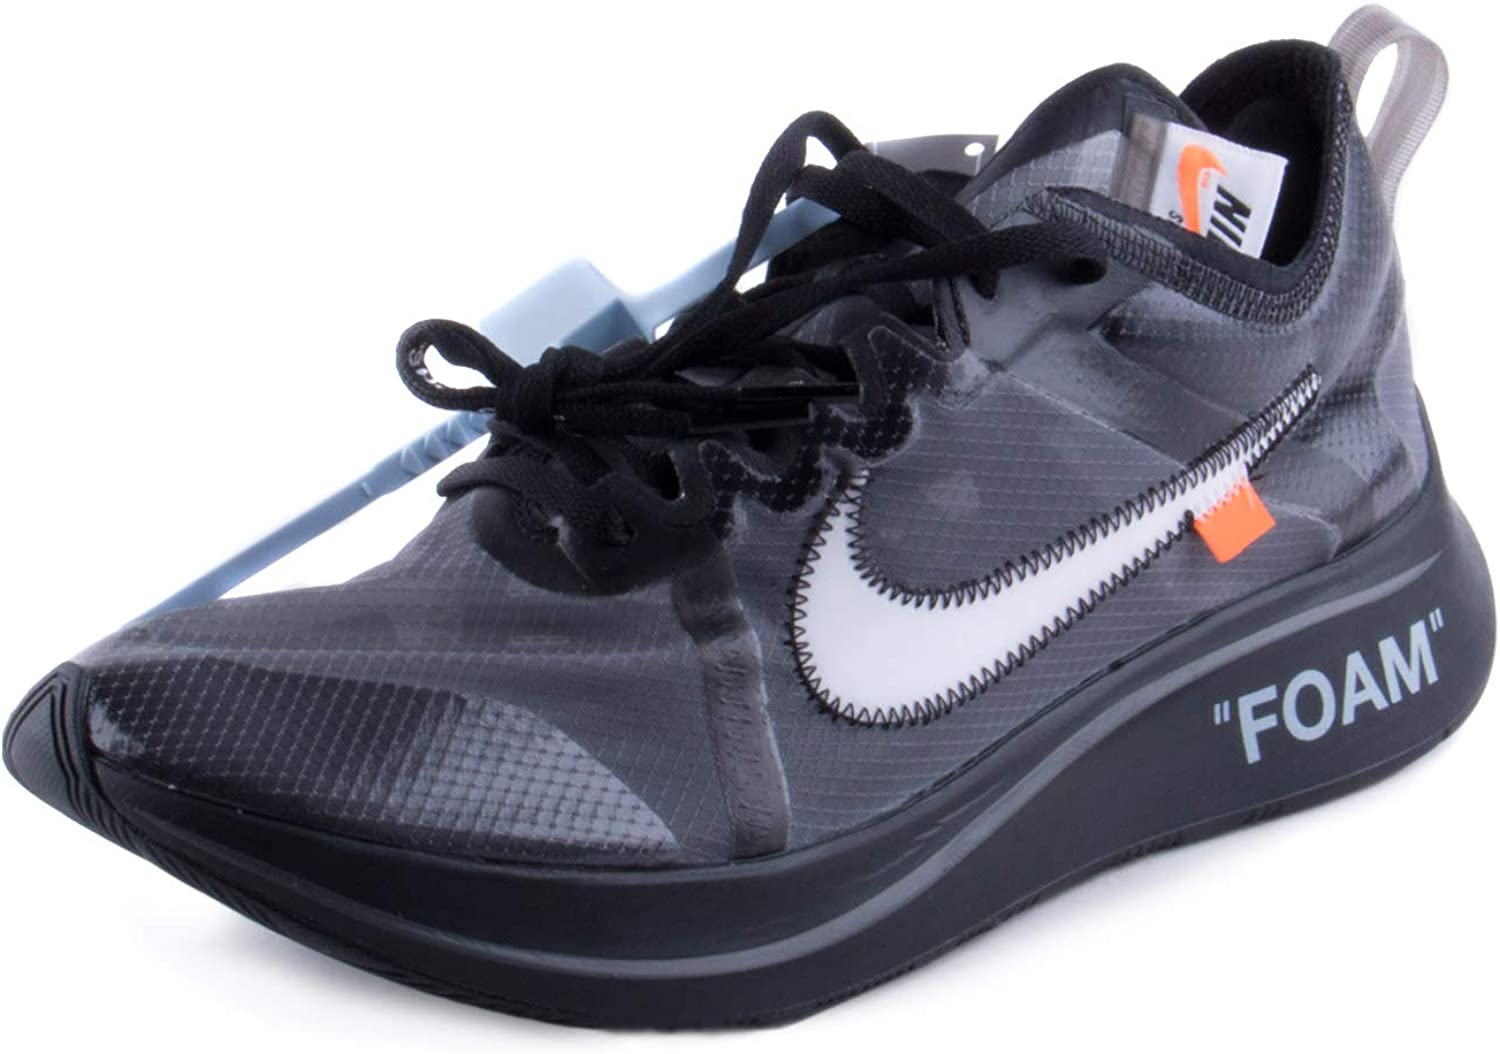 Nike Zoom Fly x Off White - Black/White-Cone-Black Trainer Size 7 UK: Amazon.es: Zapatos y complementos